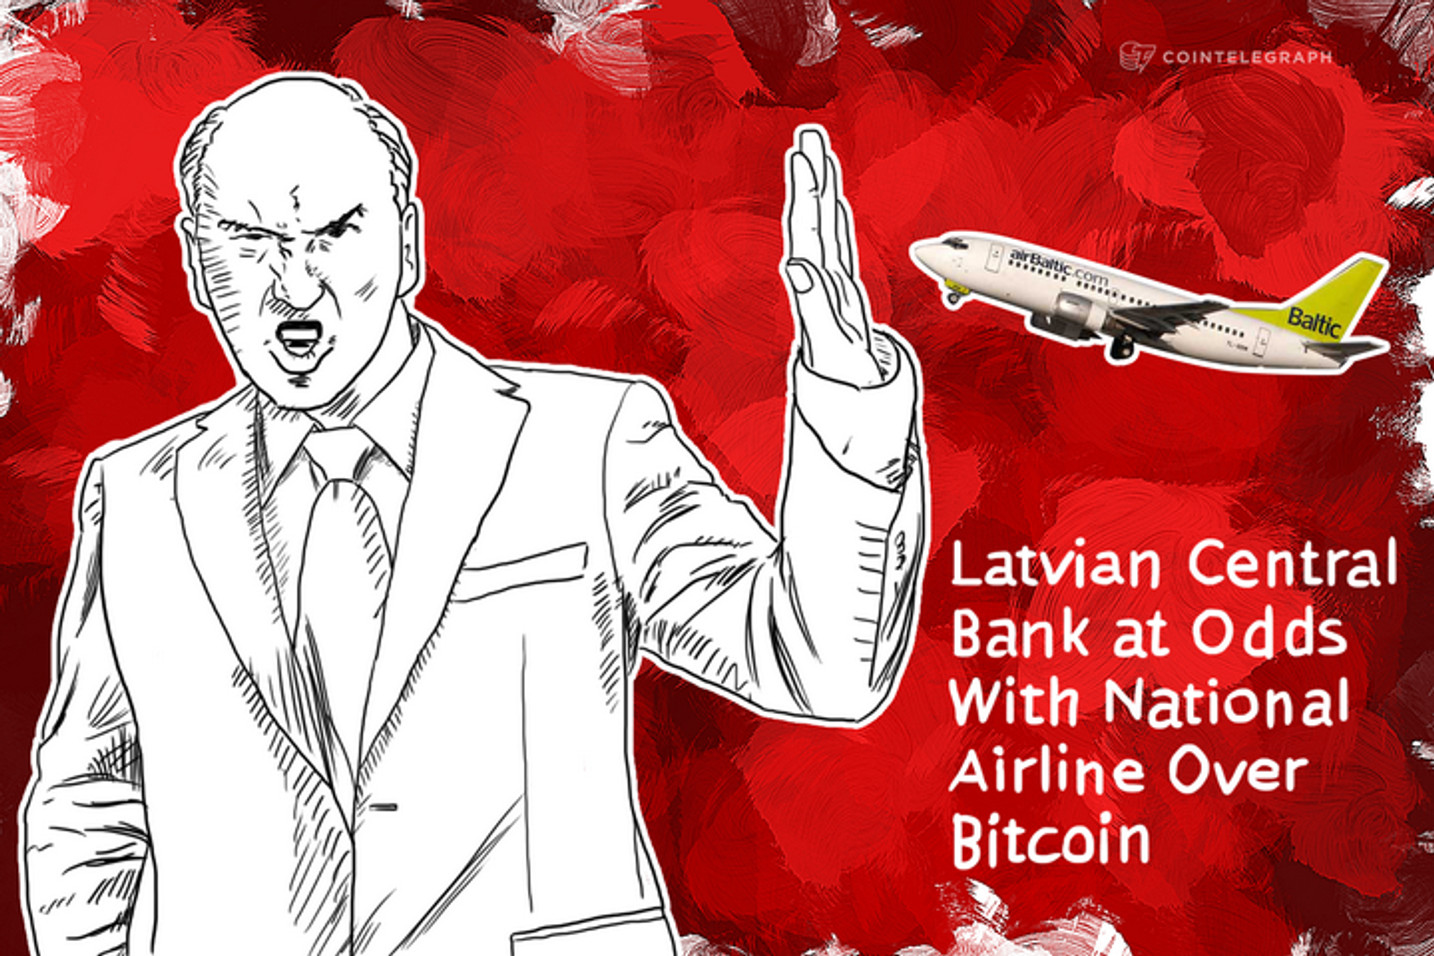 Latvian Central Bank at Odds With National Airline Over Bitcoin